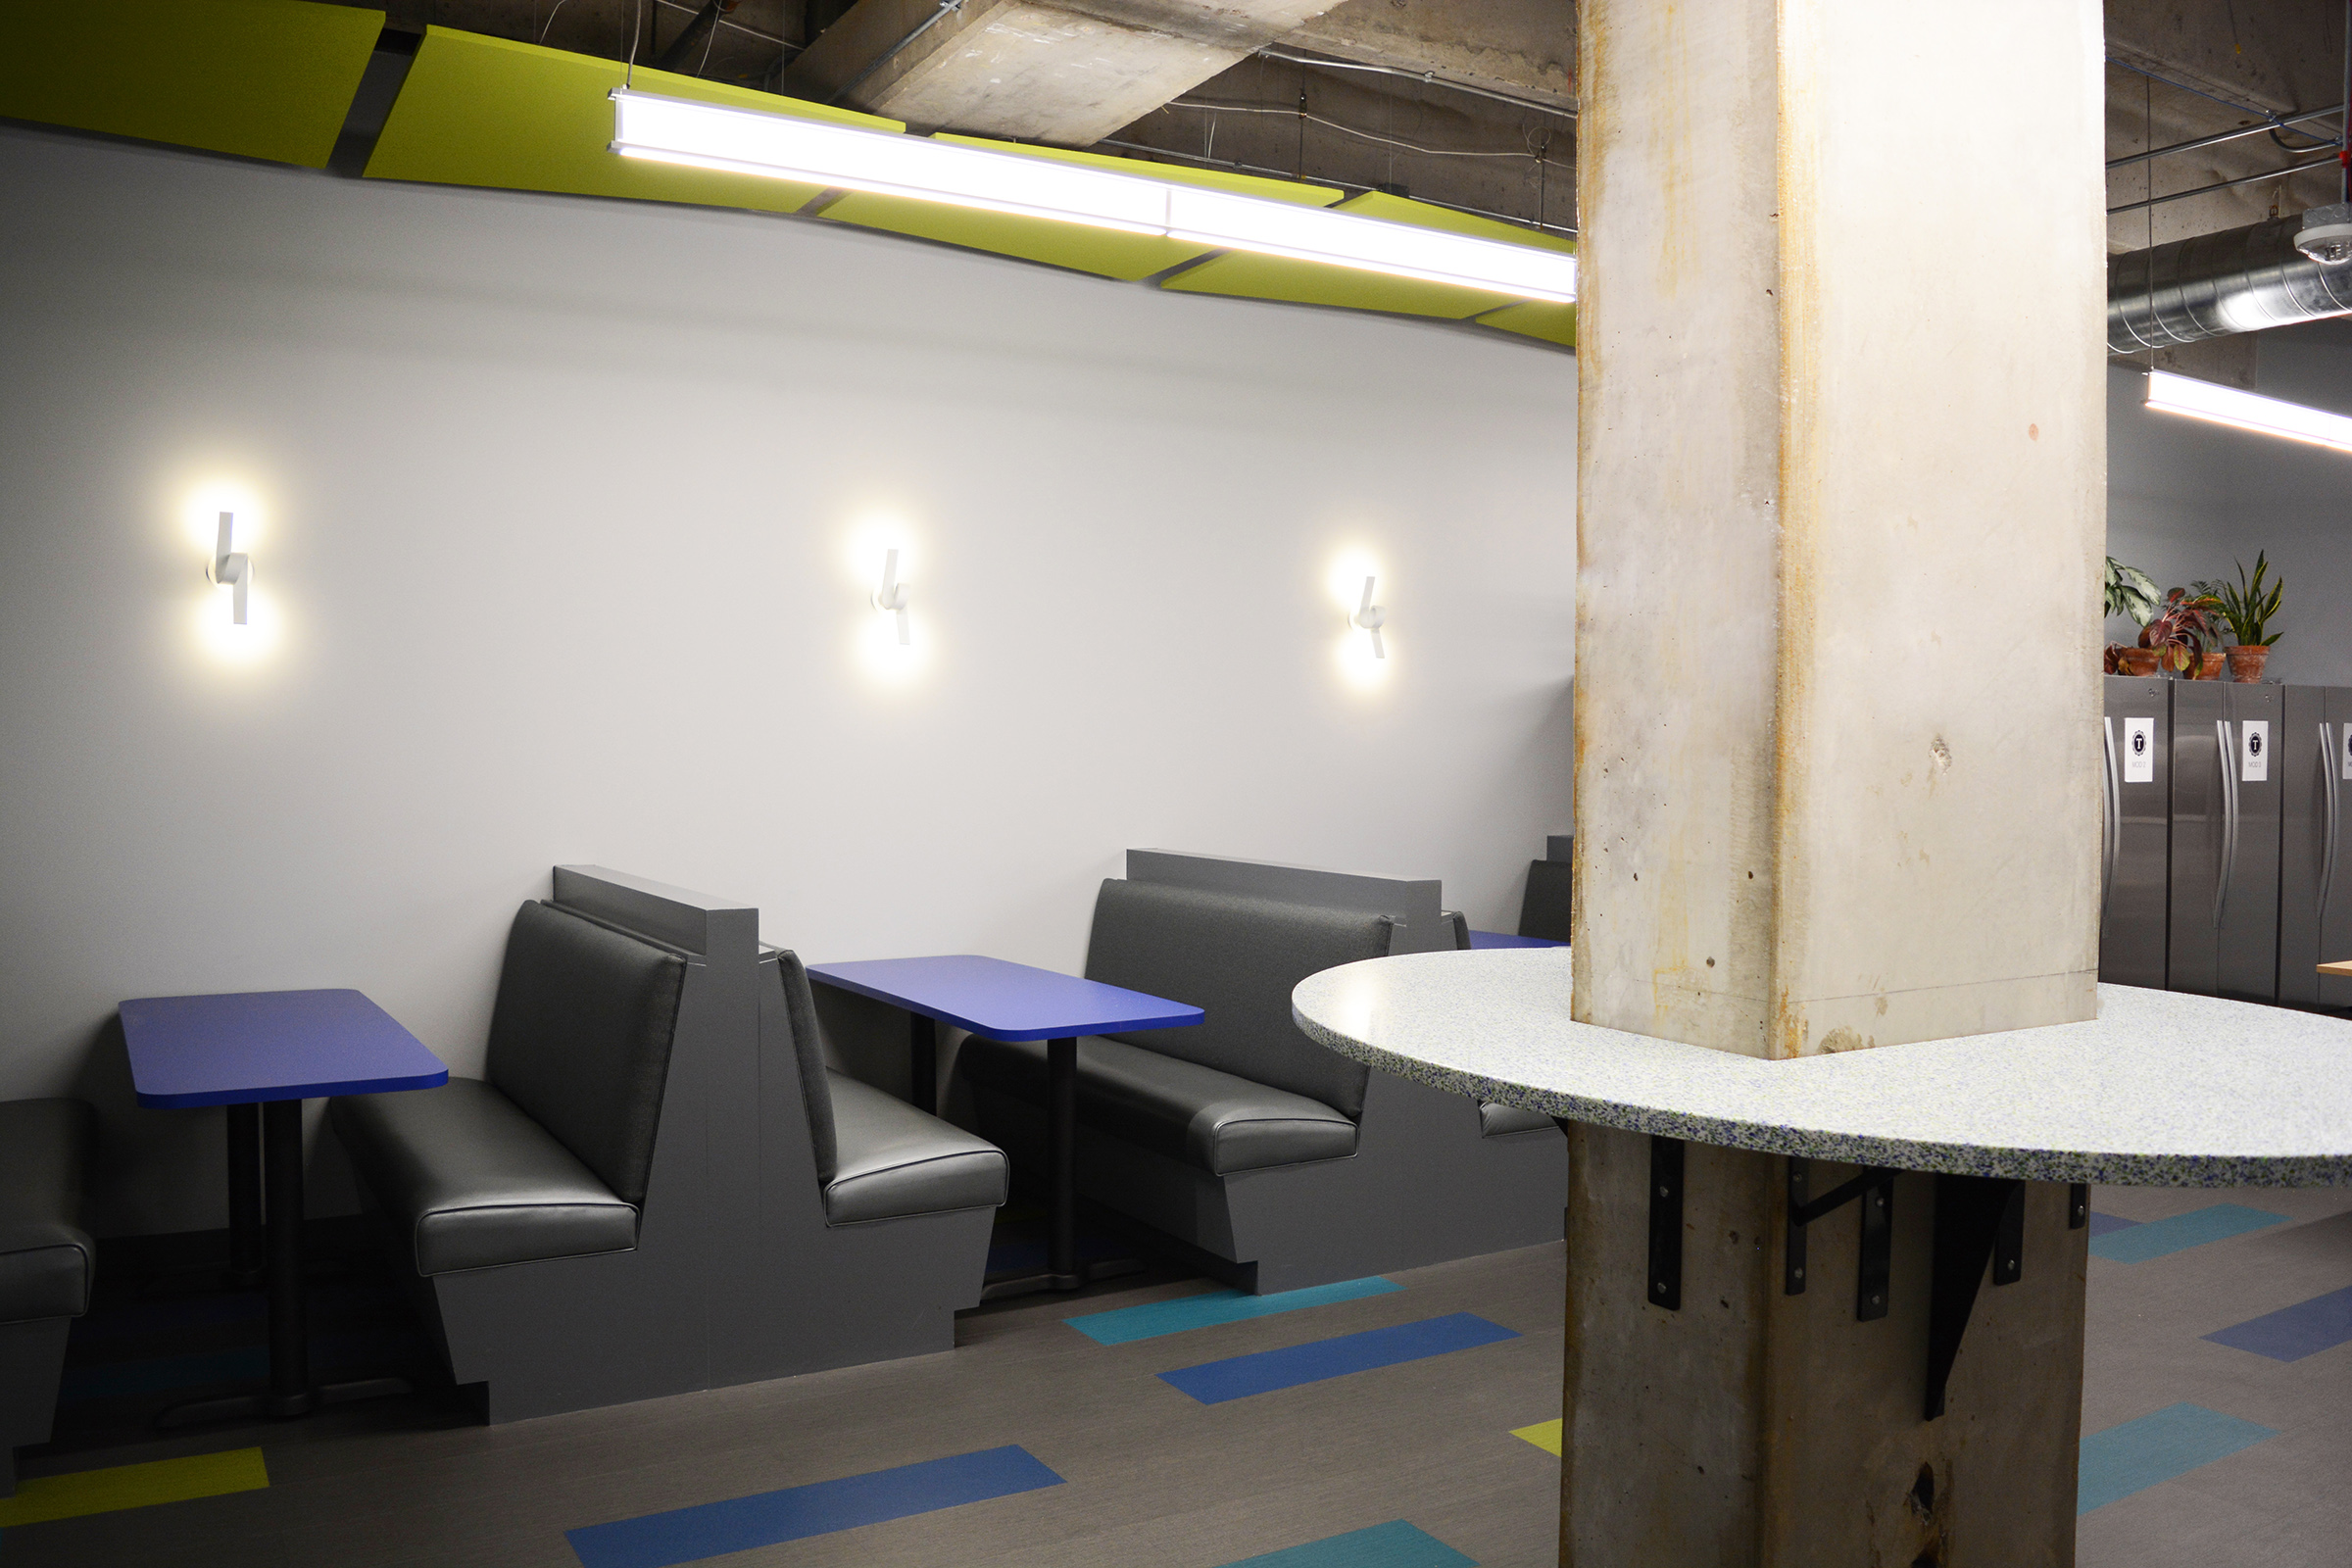 Back to School: Turing Opens Its Colorful Doors -